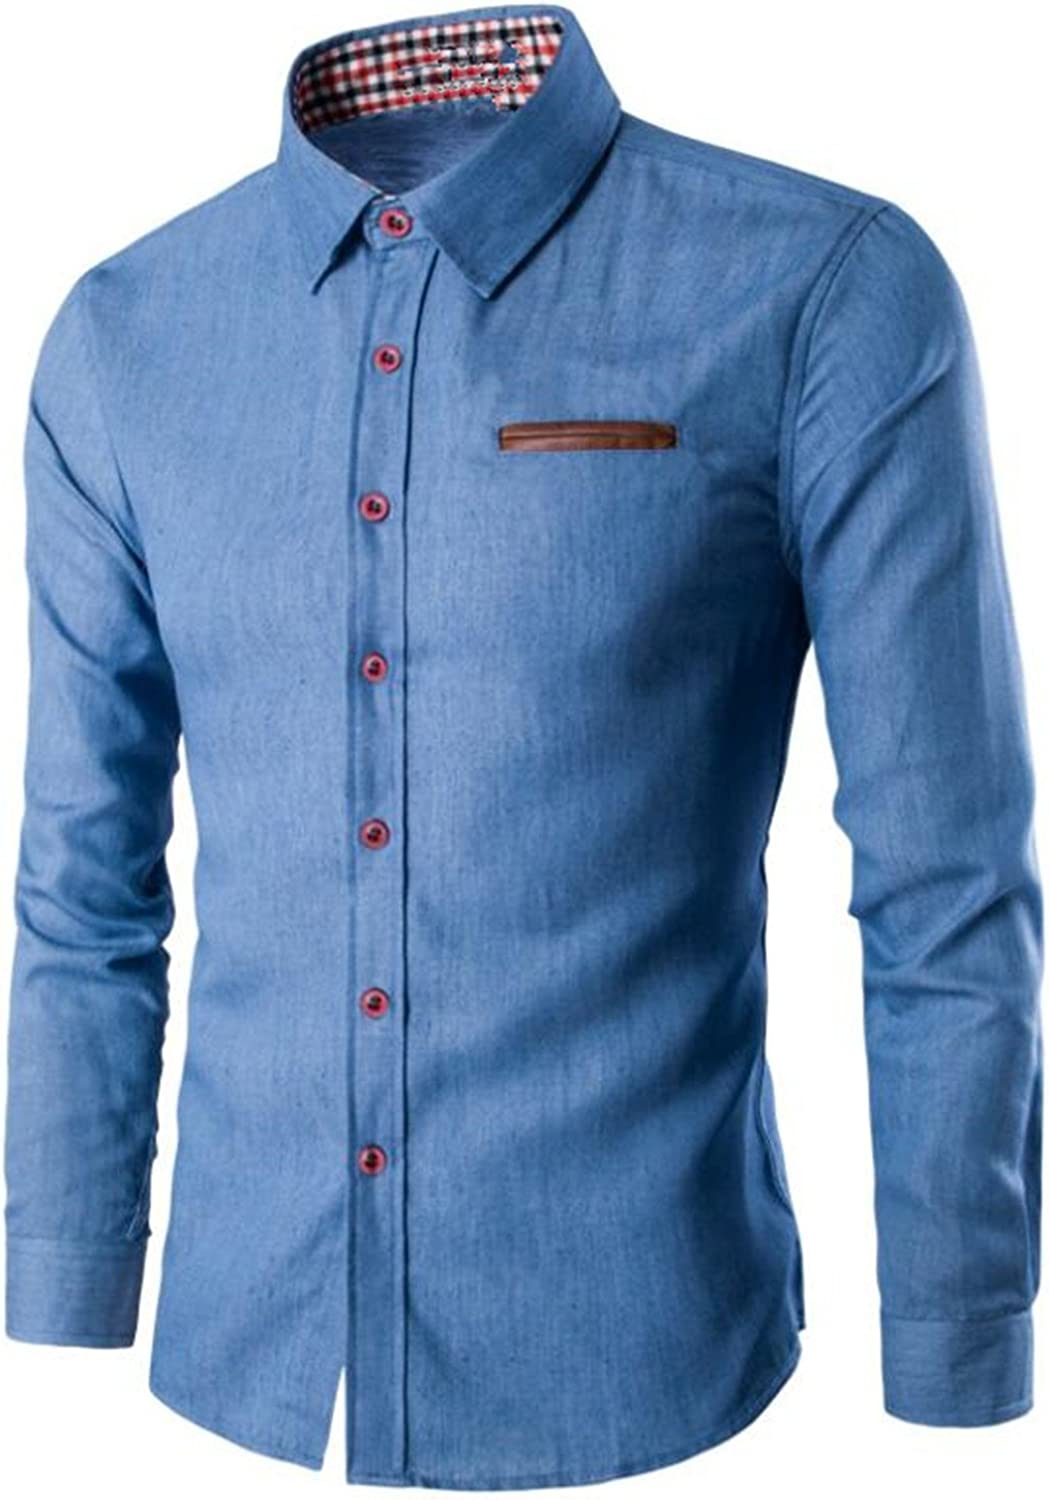 SDHEIJKY Male Fashion Pocket Fight Leather Long Sleeve Slim Fit Casual Dress Shirts